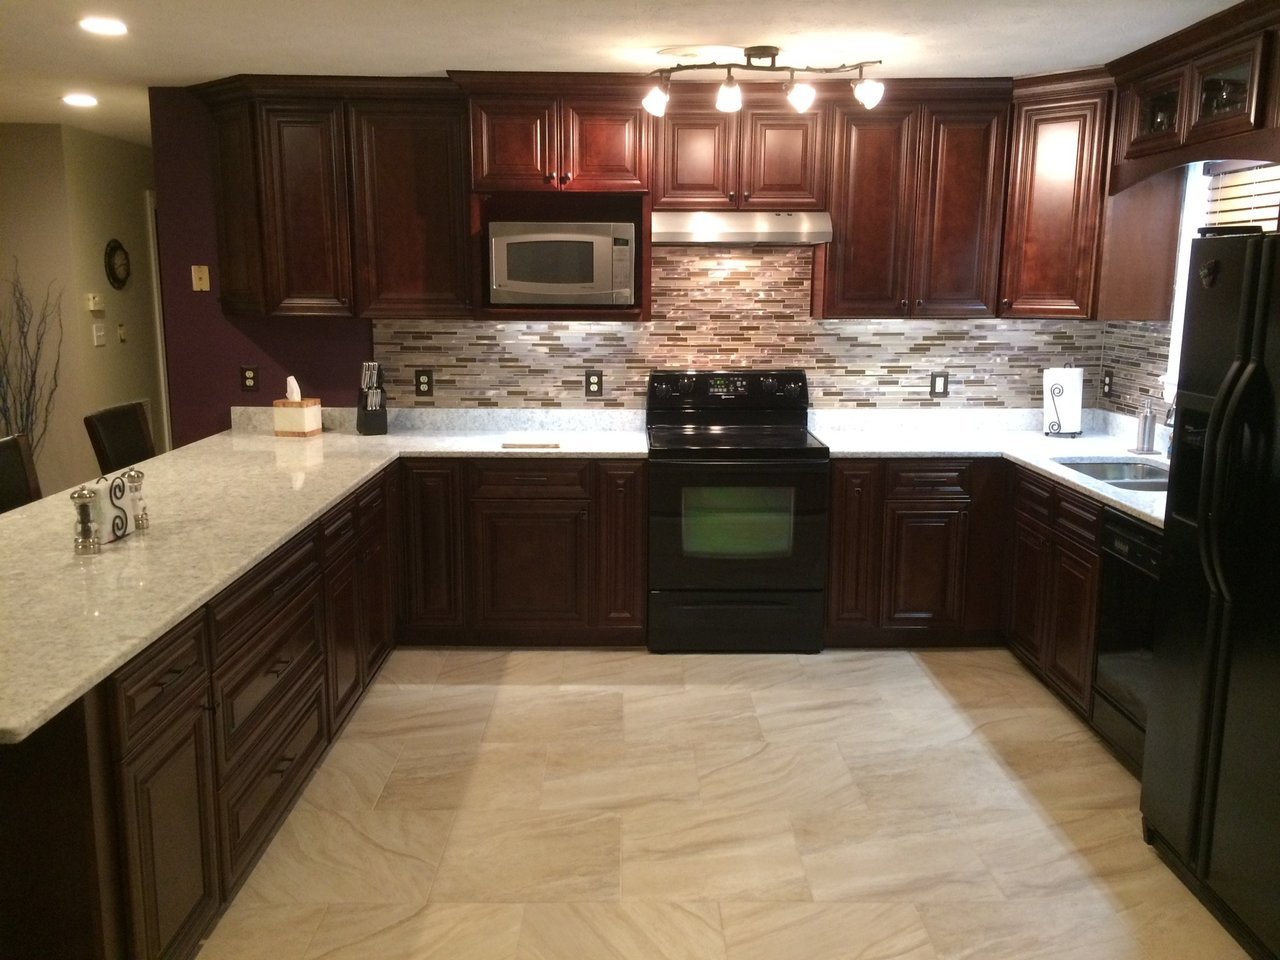 How To Choose A Countertop Color 5 Tips For Matching Kitchen Cabinets Countertops Surplus Sales